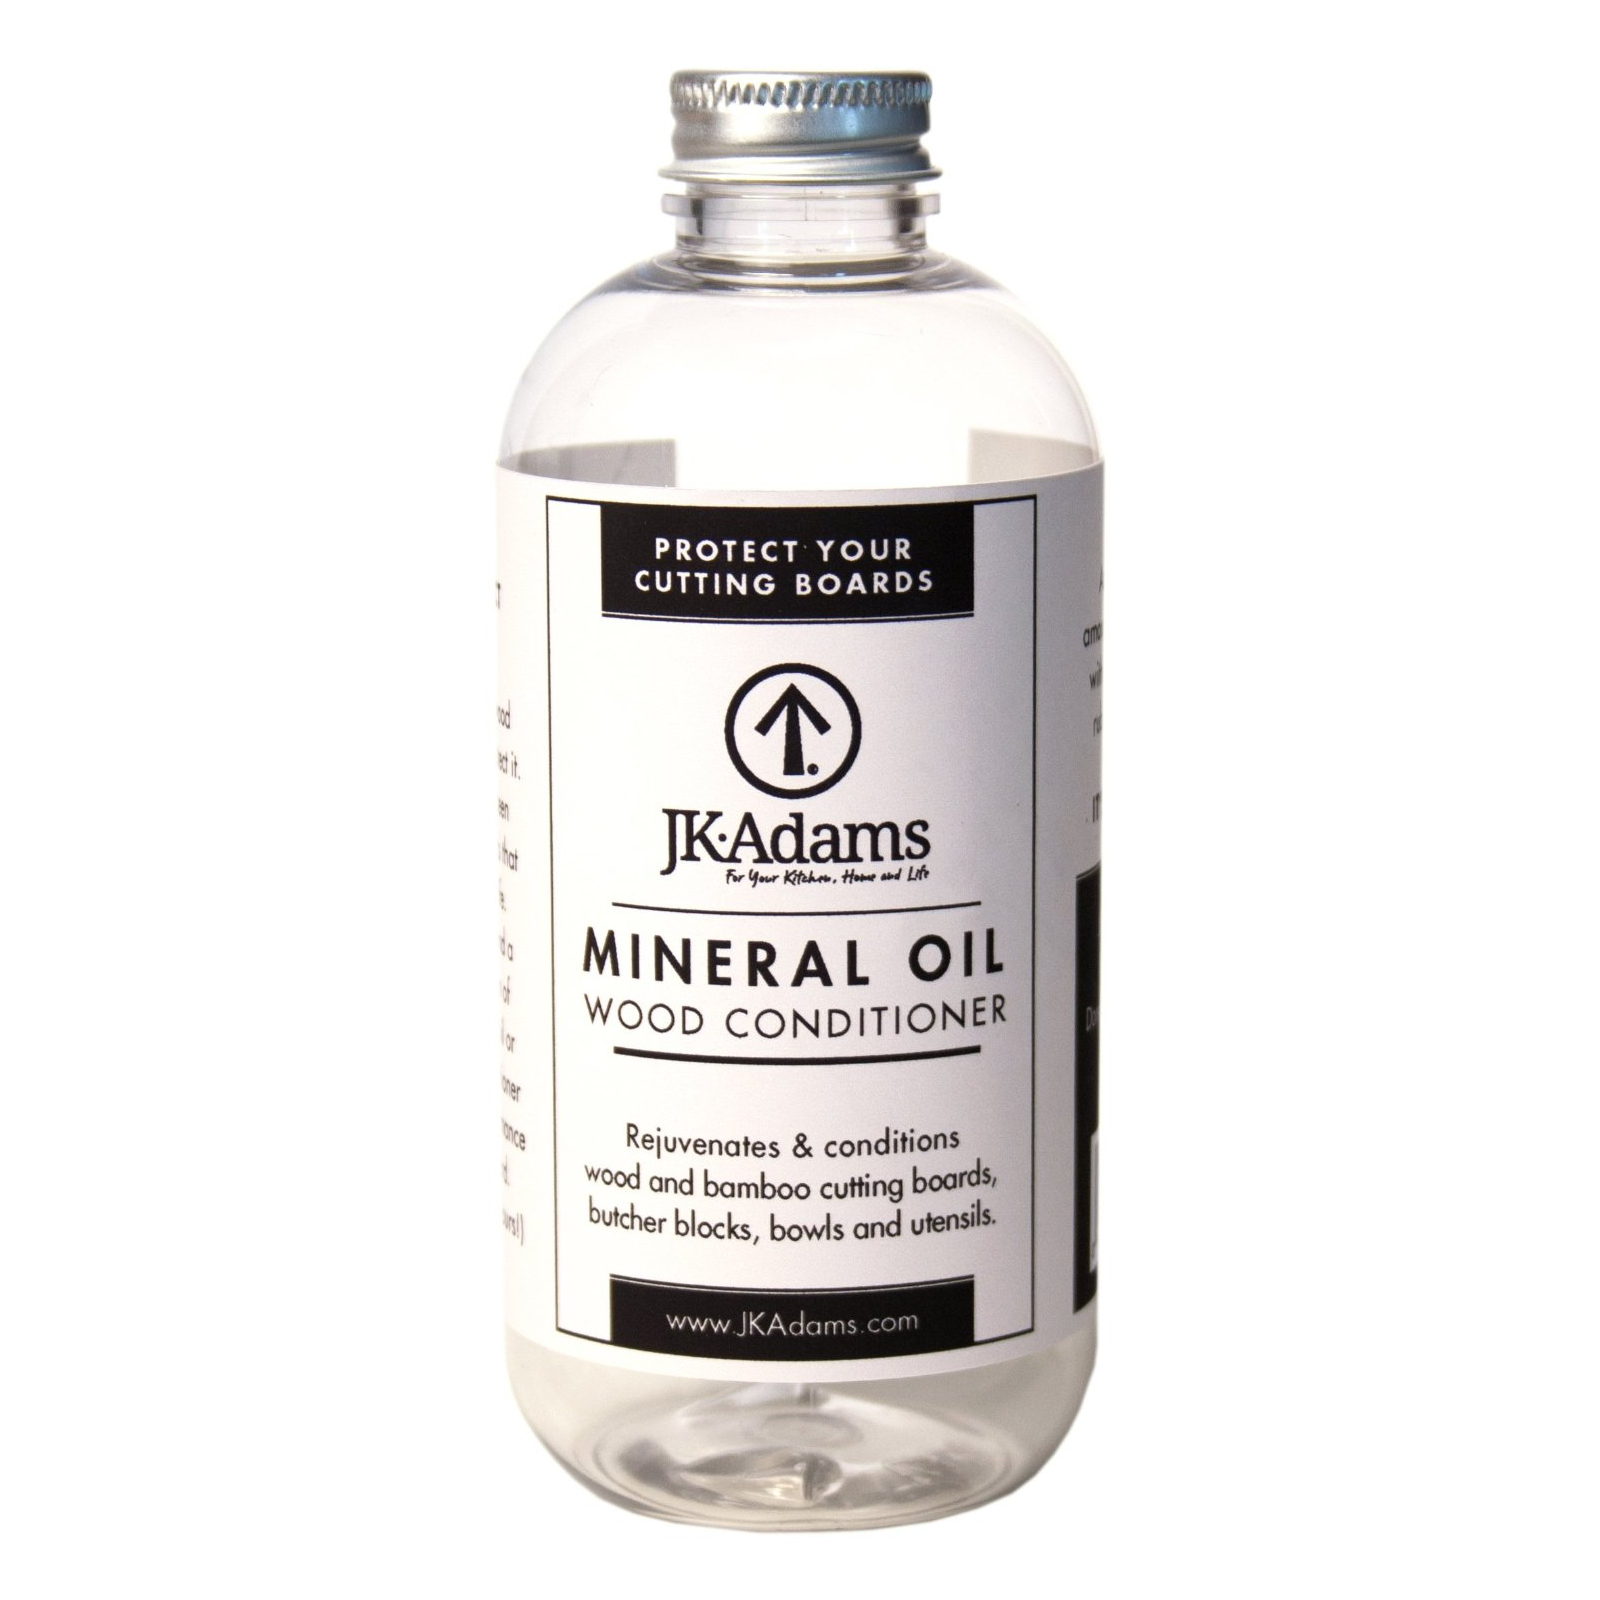 JK Adams 8 Ounce Mineral Oil Wood Conditioner Bottle